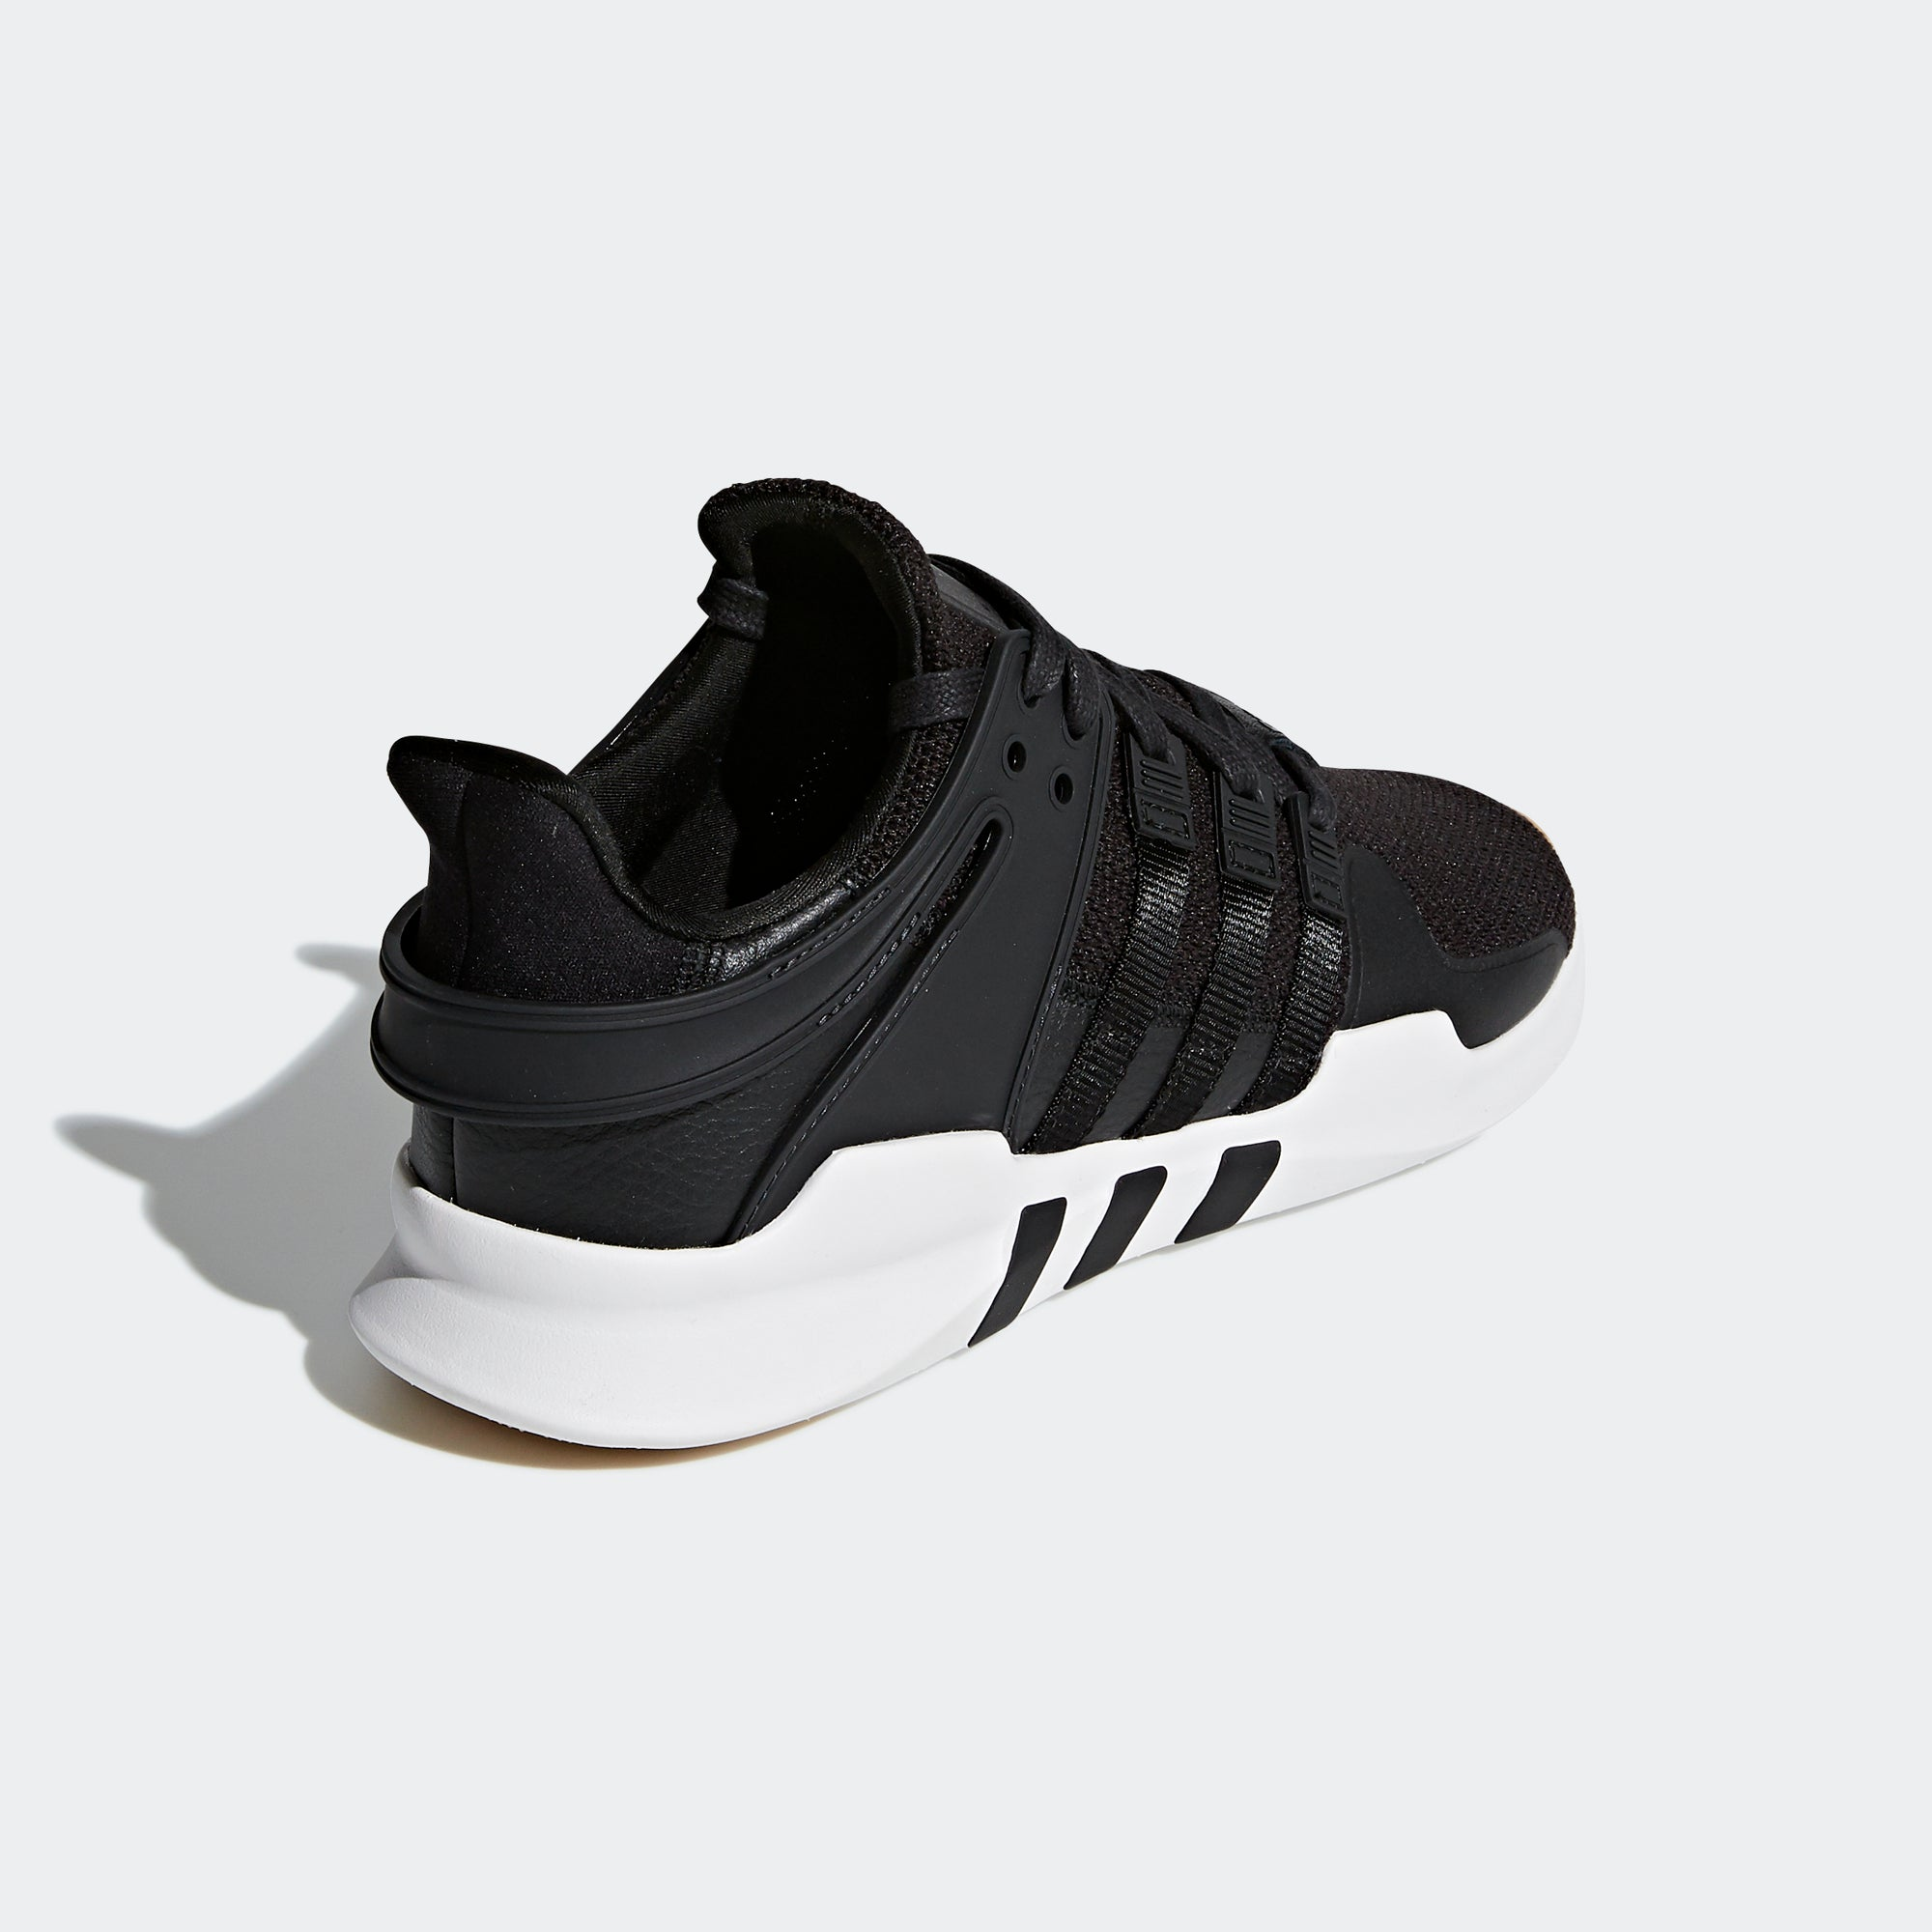 new styles de0fb e0829 Mens adidas Originals EQT Support ADV Shoes Core Black Gum. 1